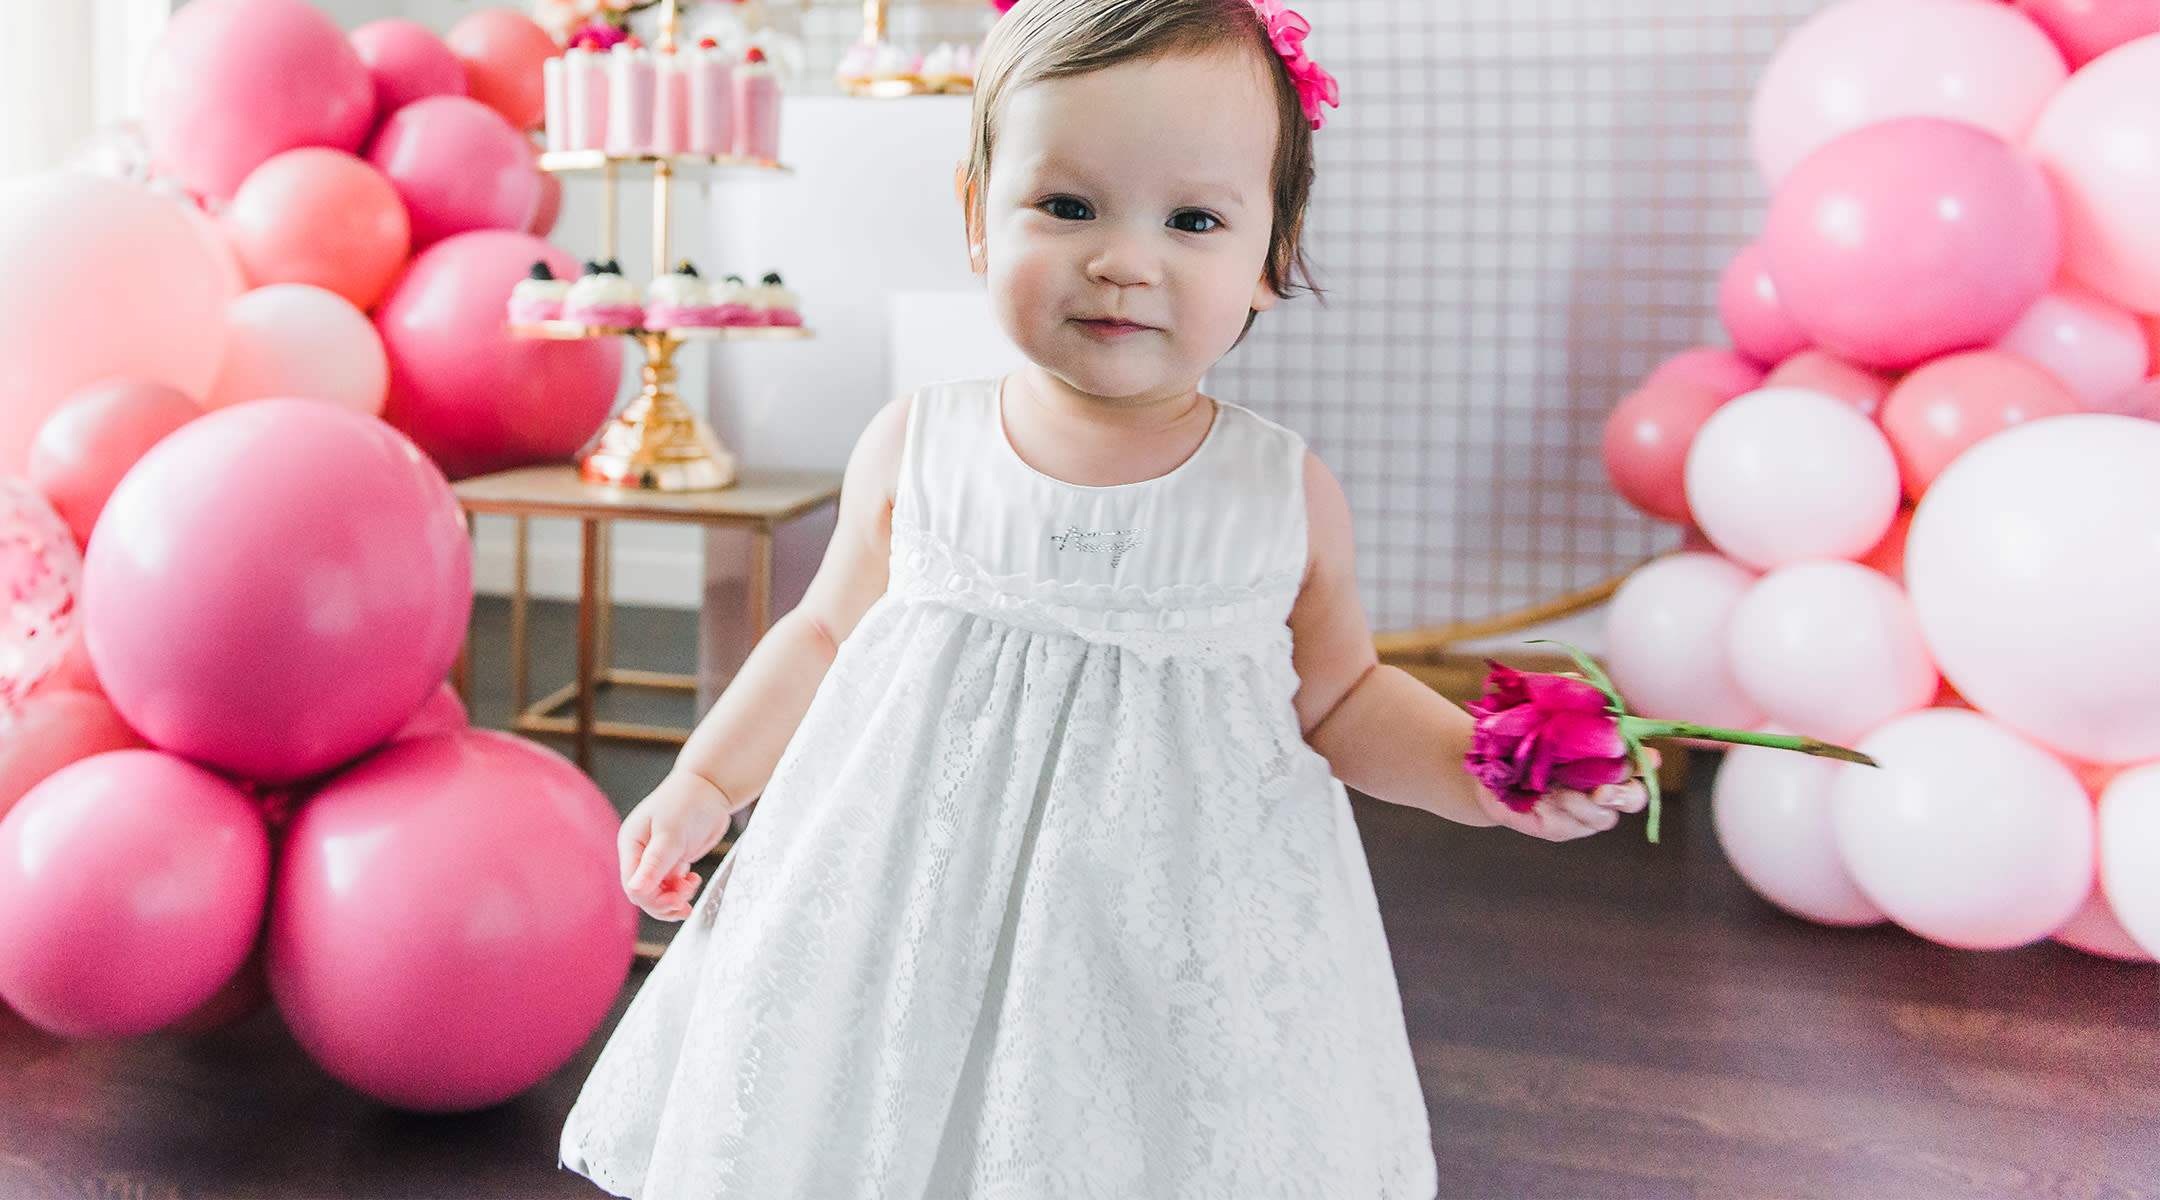 little girl in white dress on her first birthday